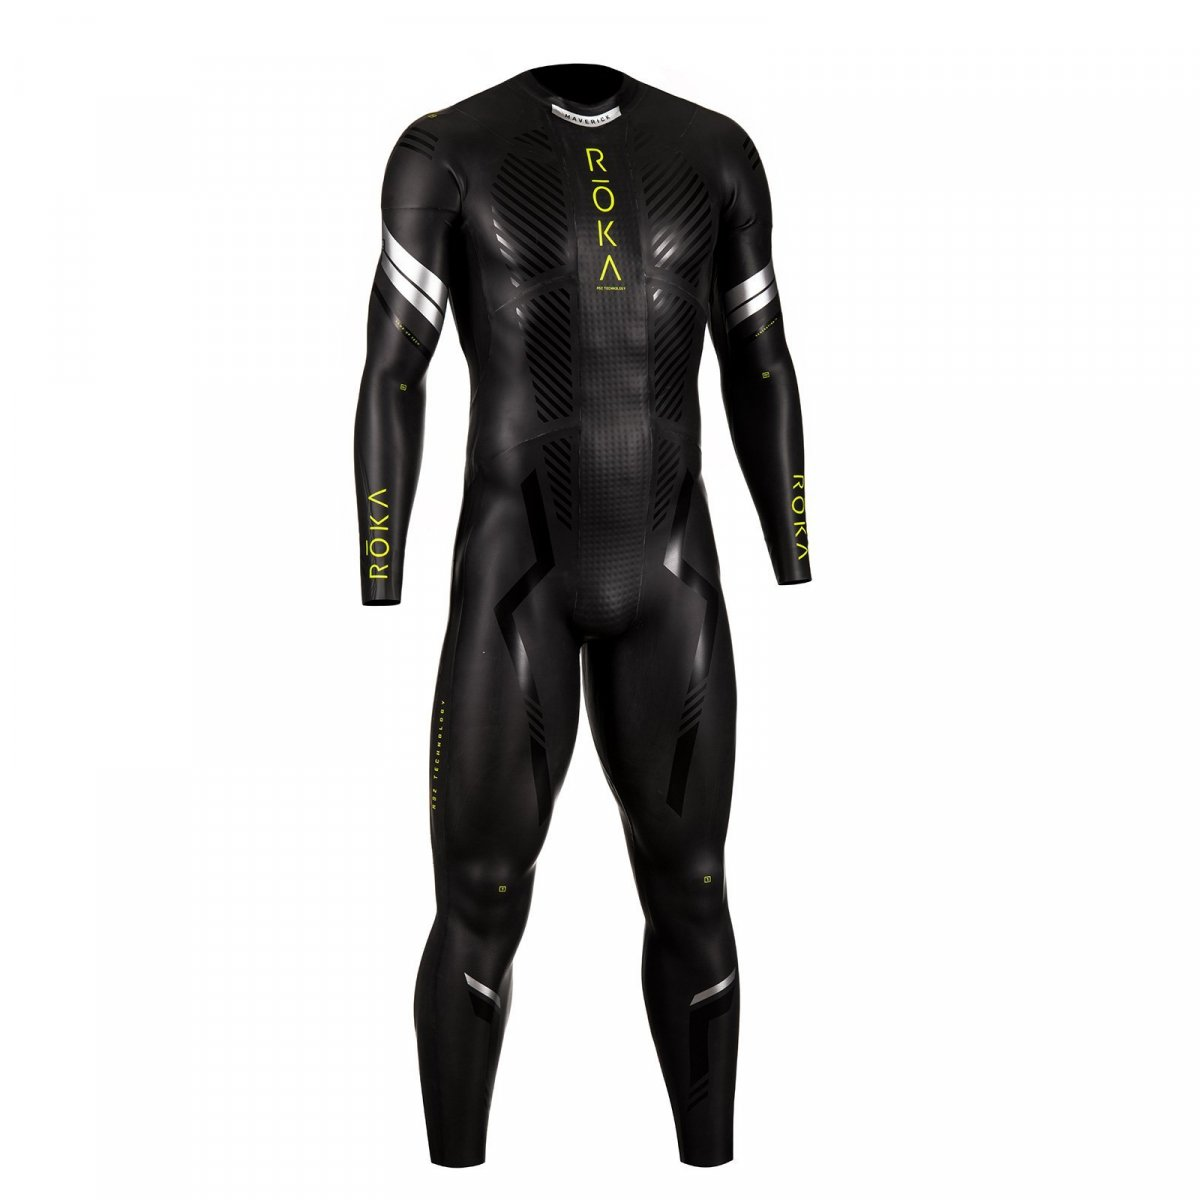 Roka-maverick-pro-thermal-men-front